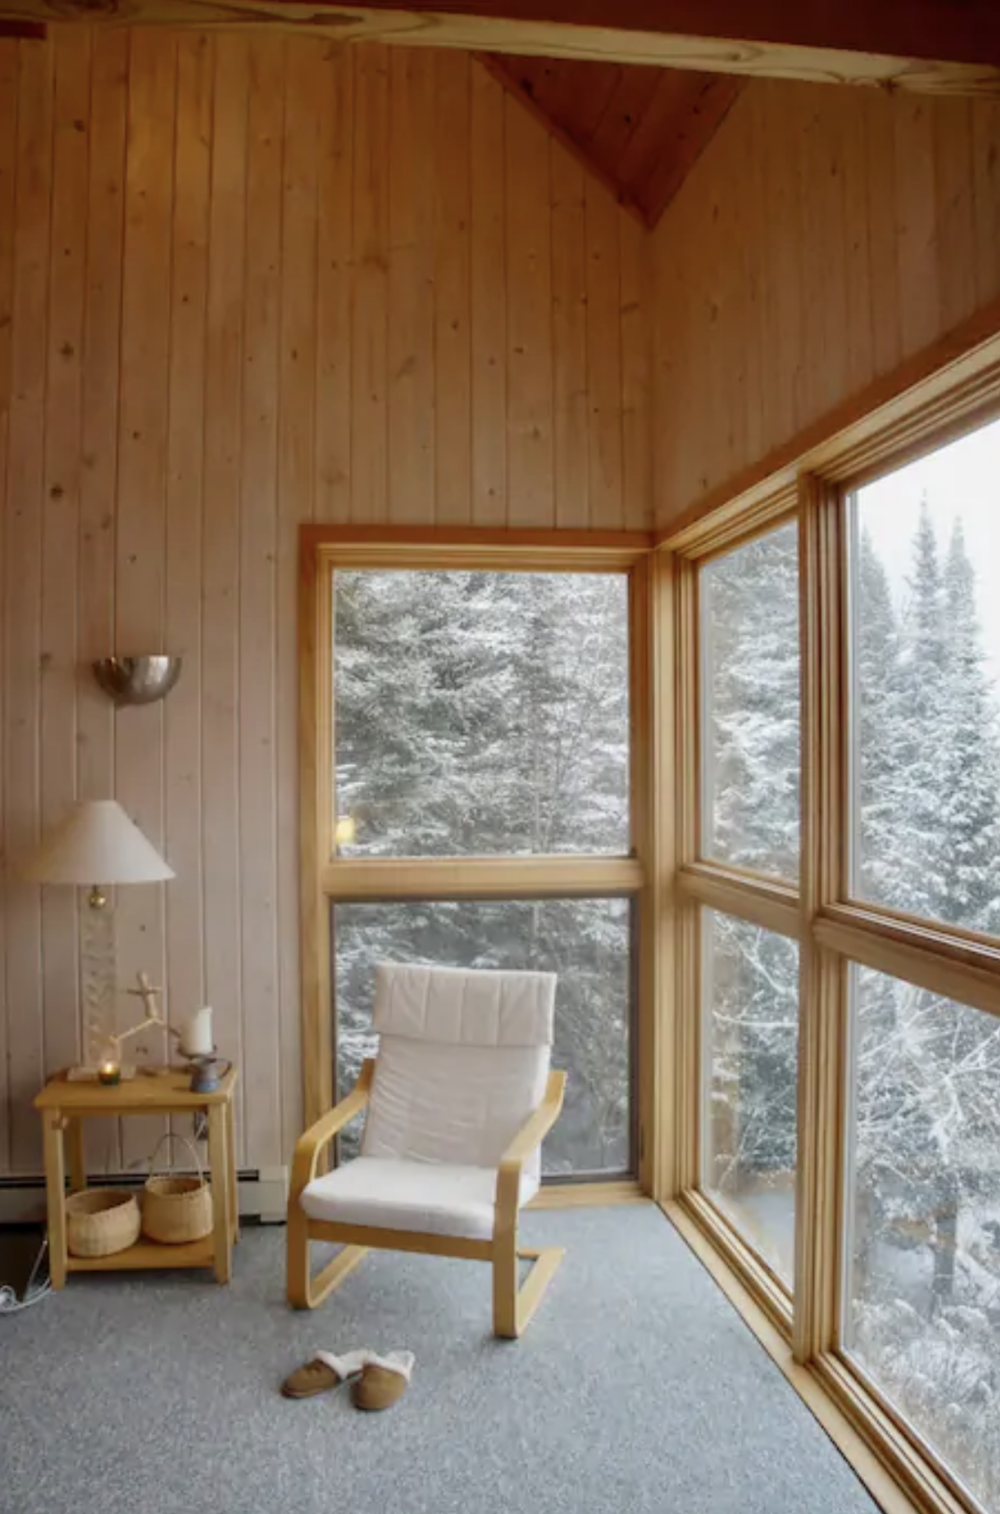 A cozy corner allows for pure relaxation as the snow gently falls among the surrounding trees. /  Source